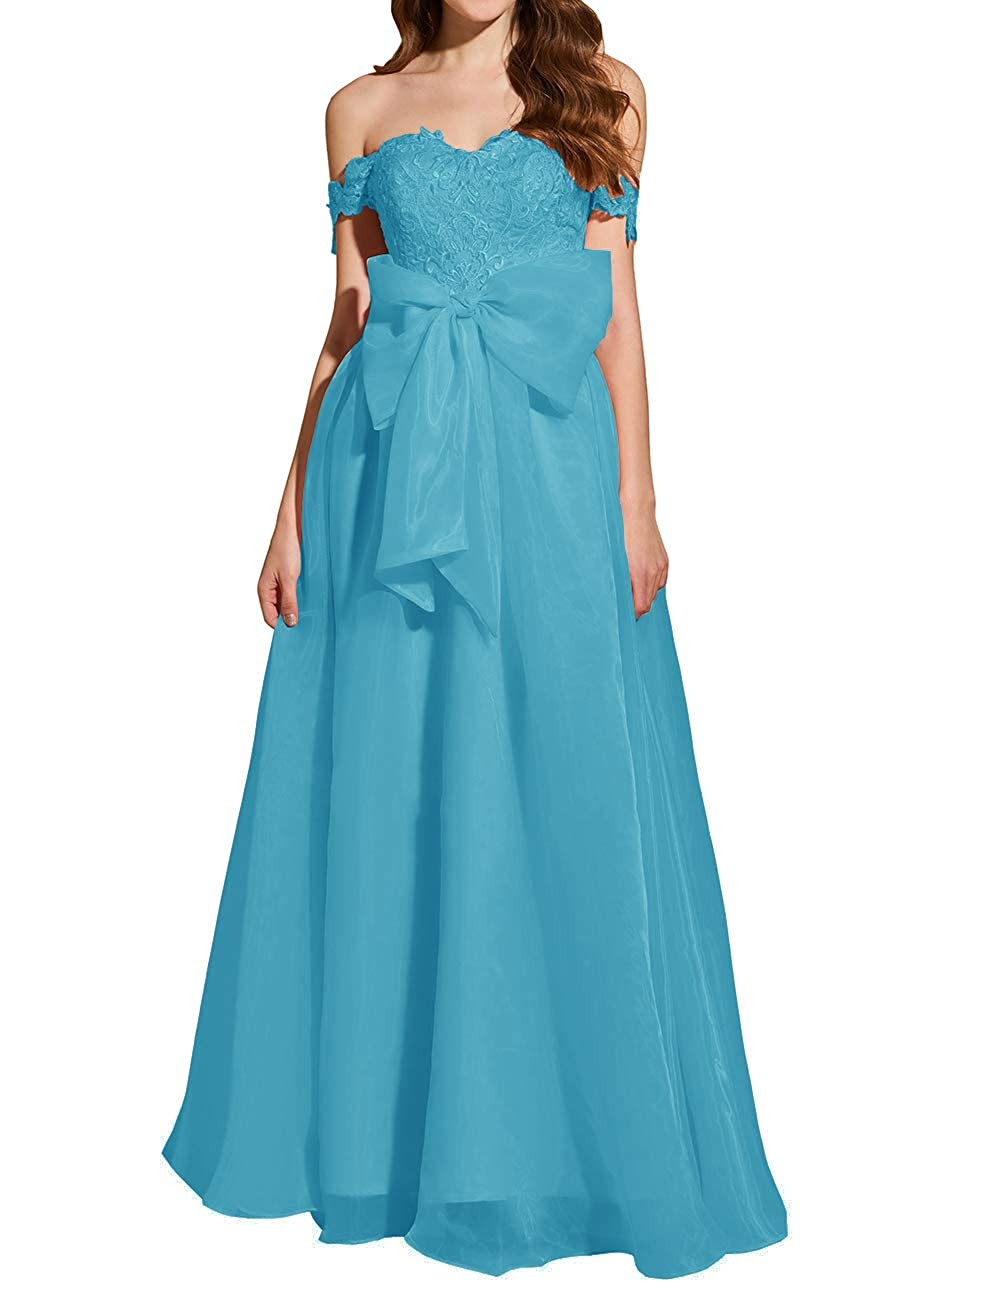 Turquoise Uther Formal Prom Dresses Off The Shoulder Appliques Long Evening Party Gowns Organza